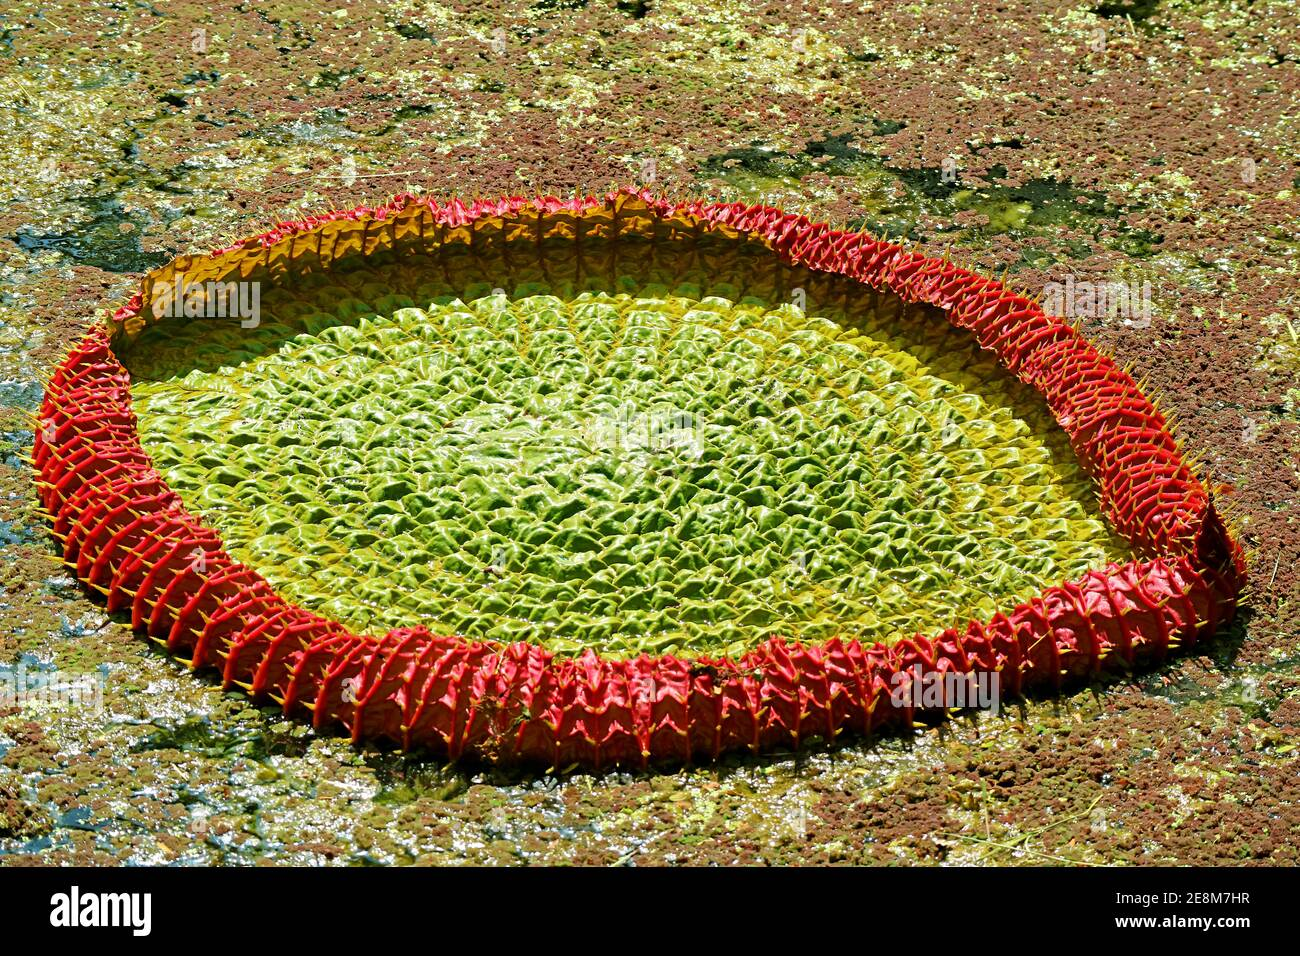 Amazing Immature Water Lily Pad of Victoria Amazonica in the Pond Stock Photo